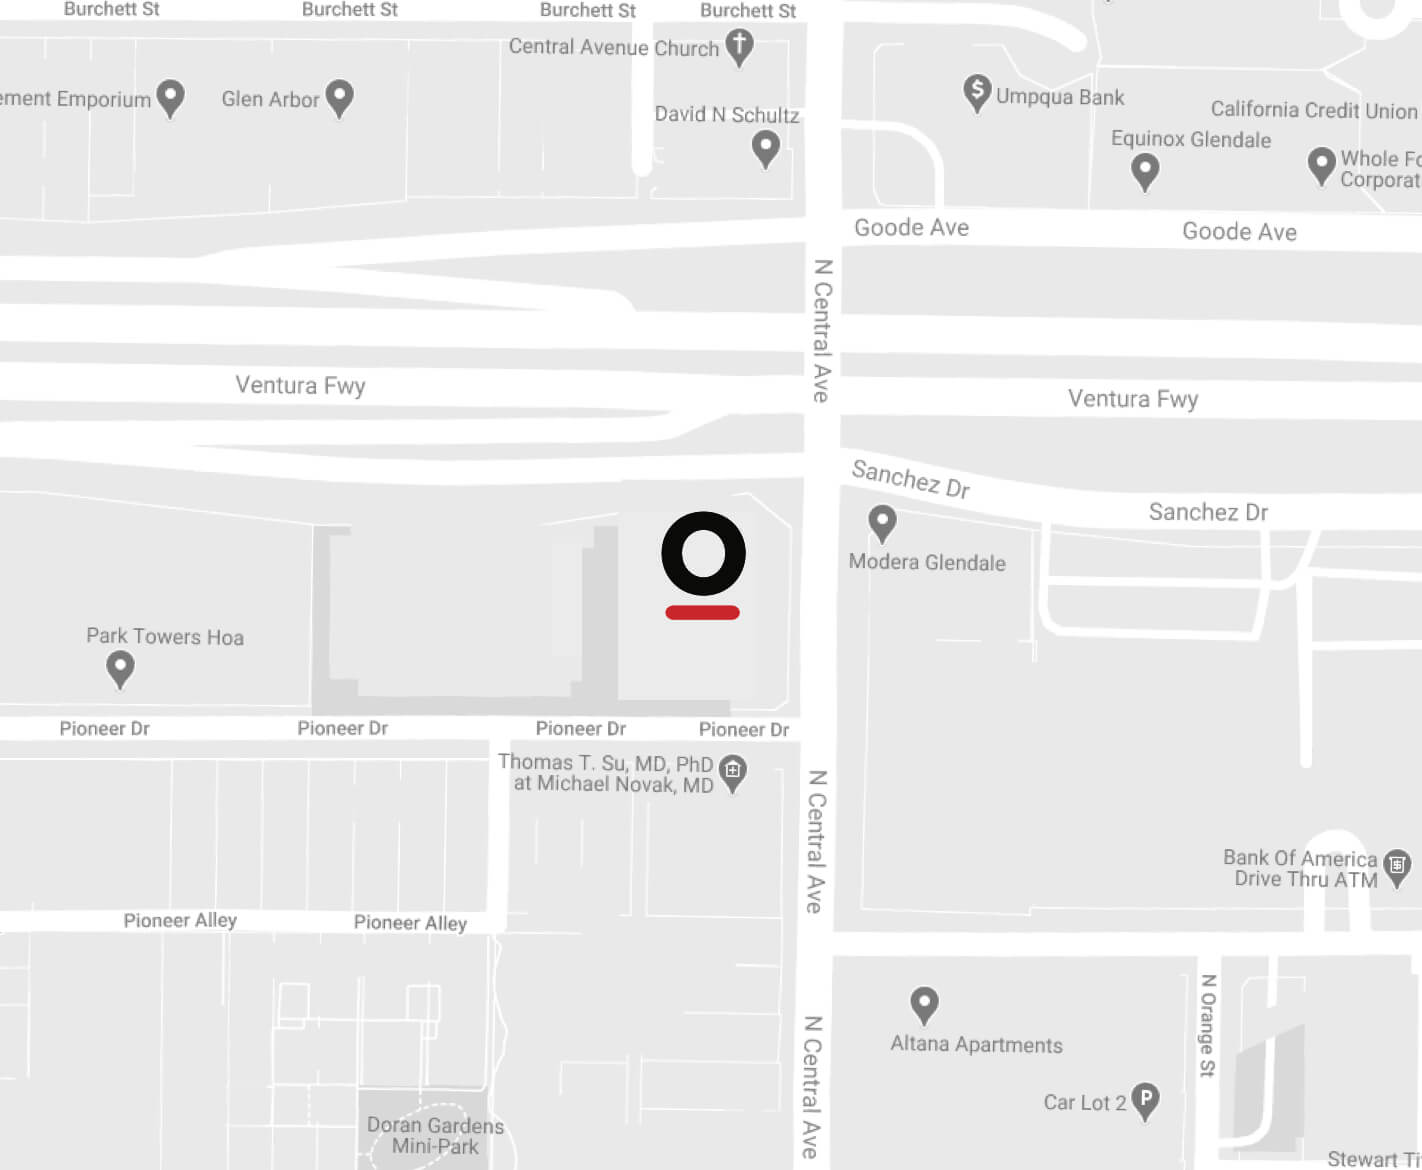 Picture of a map with the letter O with a red underline marking the location of the OvareGroup headquarters, at 655 North Central Ave., Glendale, CA 91203